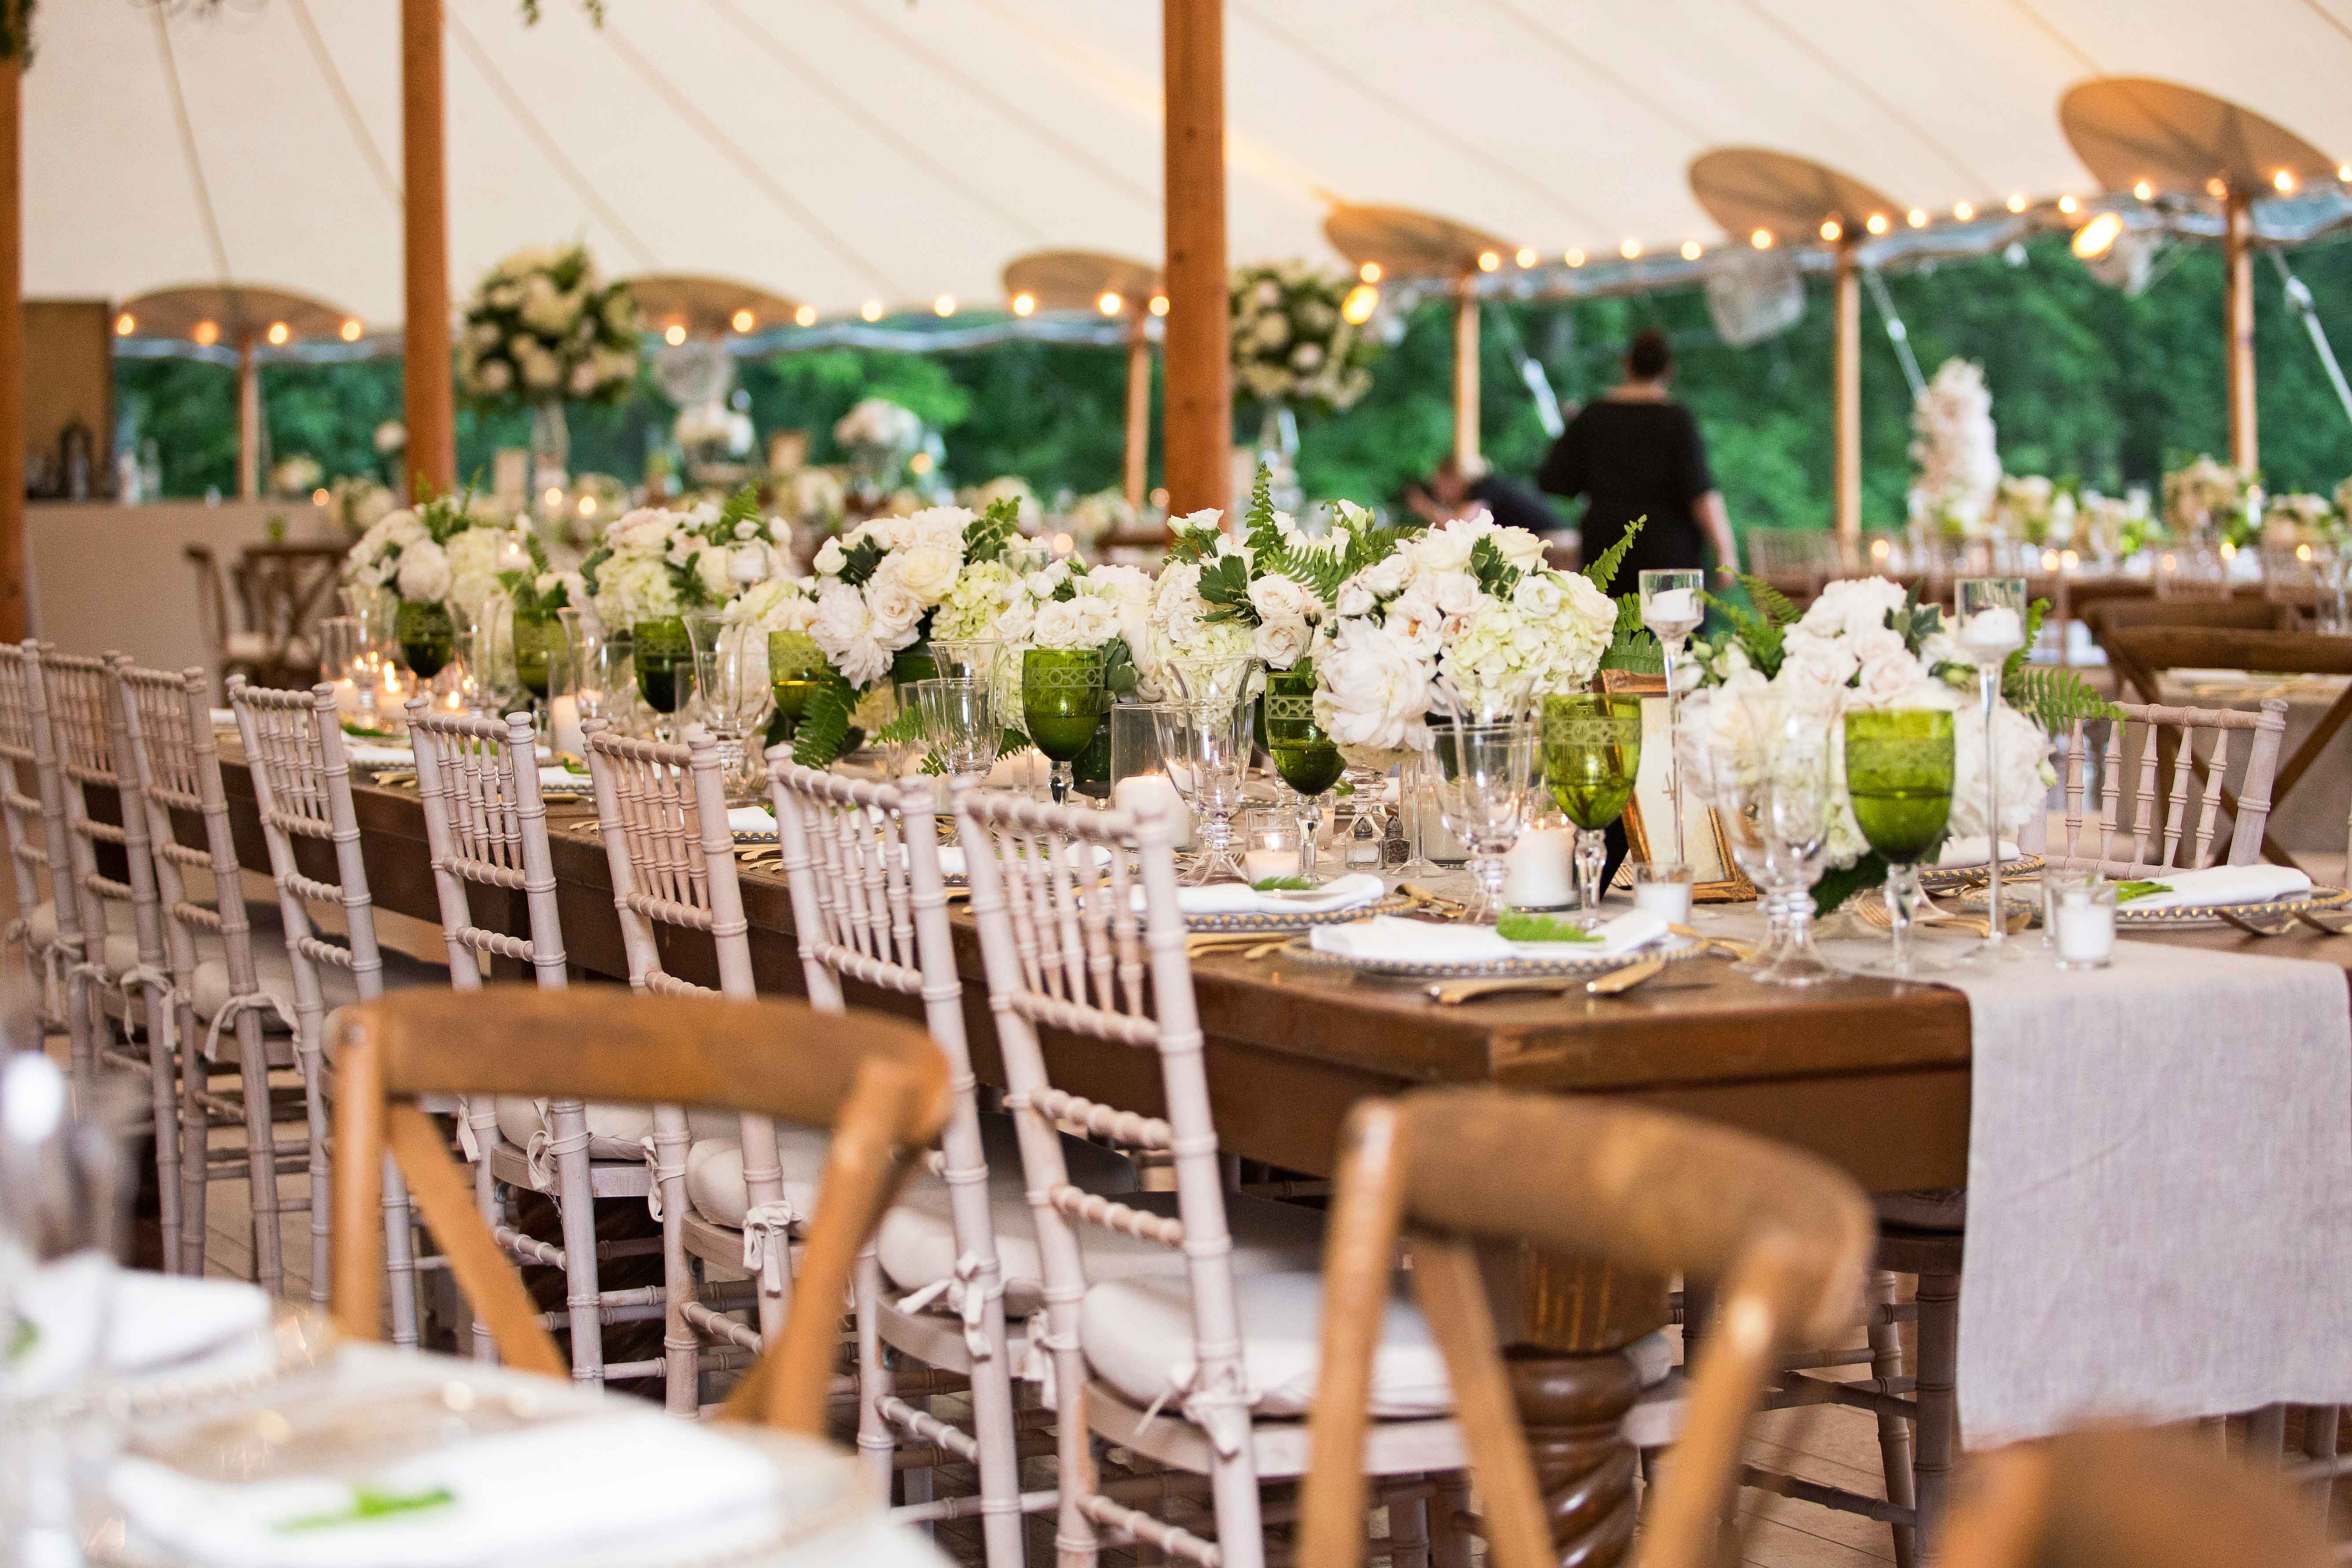 Tent wedding rustic wood tables with green and white flowers green glassware